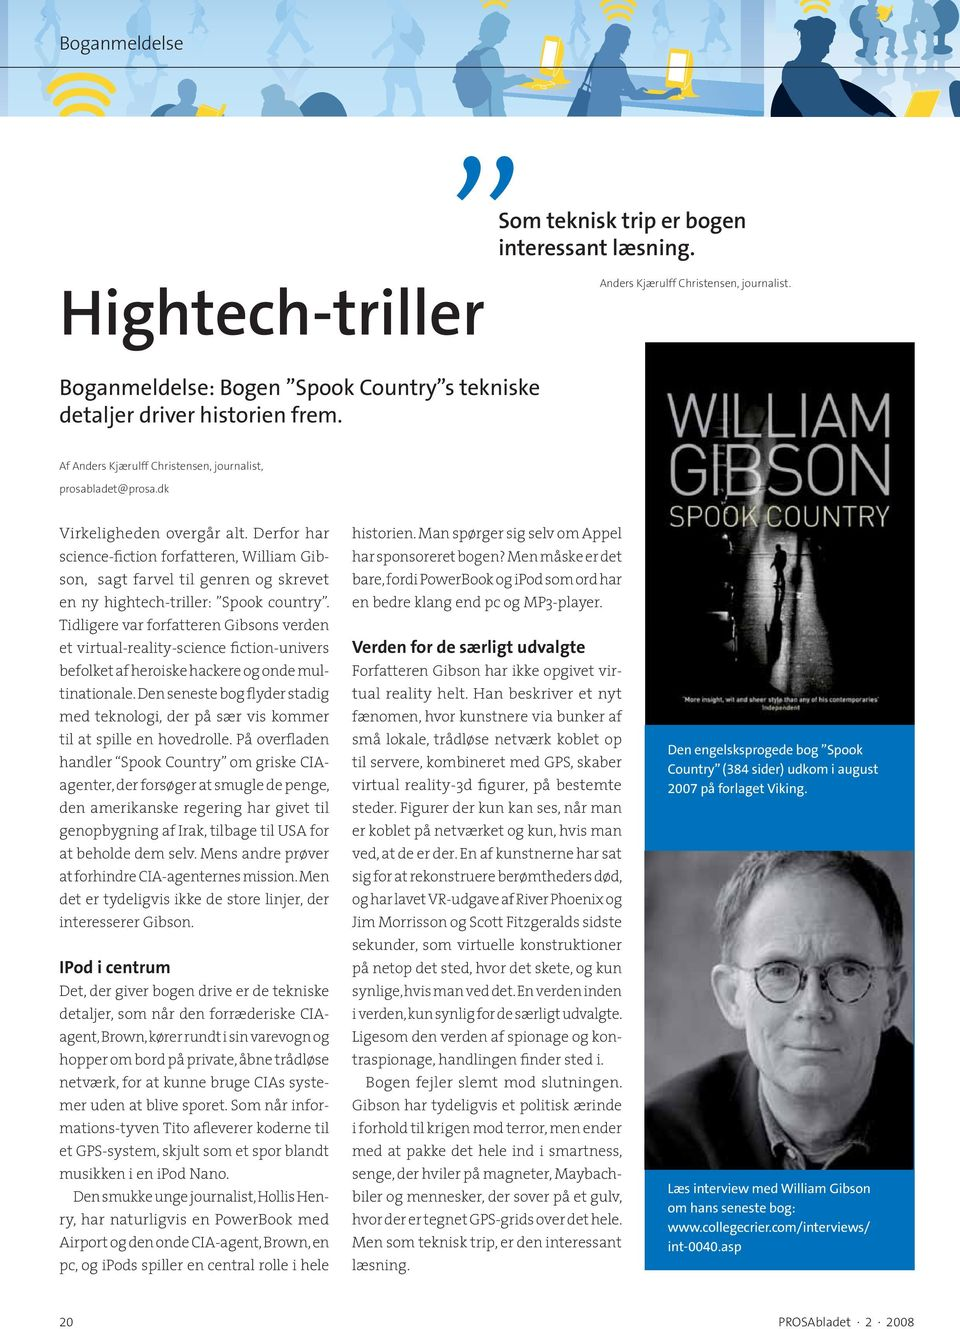 Derfor har science-fiction forfatteren, William Gibson, sagt farvel til genren og skrevet en ny hightech-triller: Spook country.